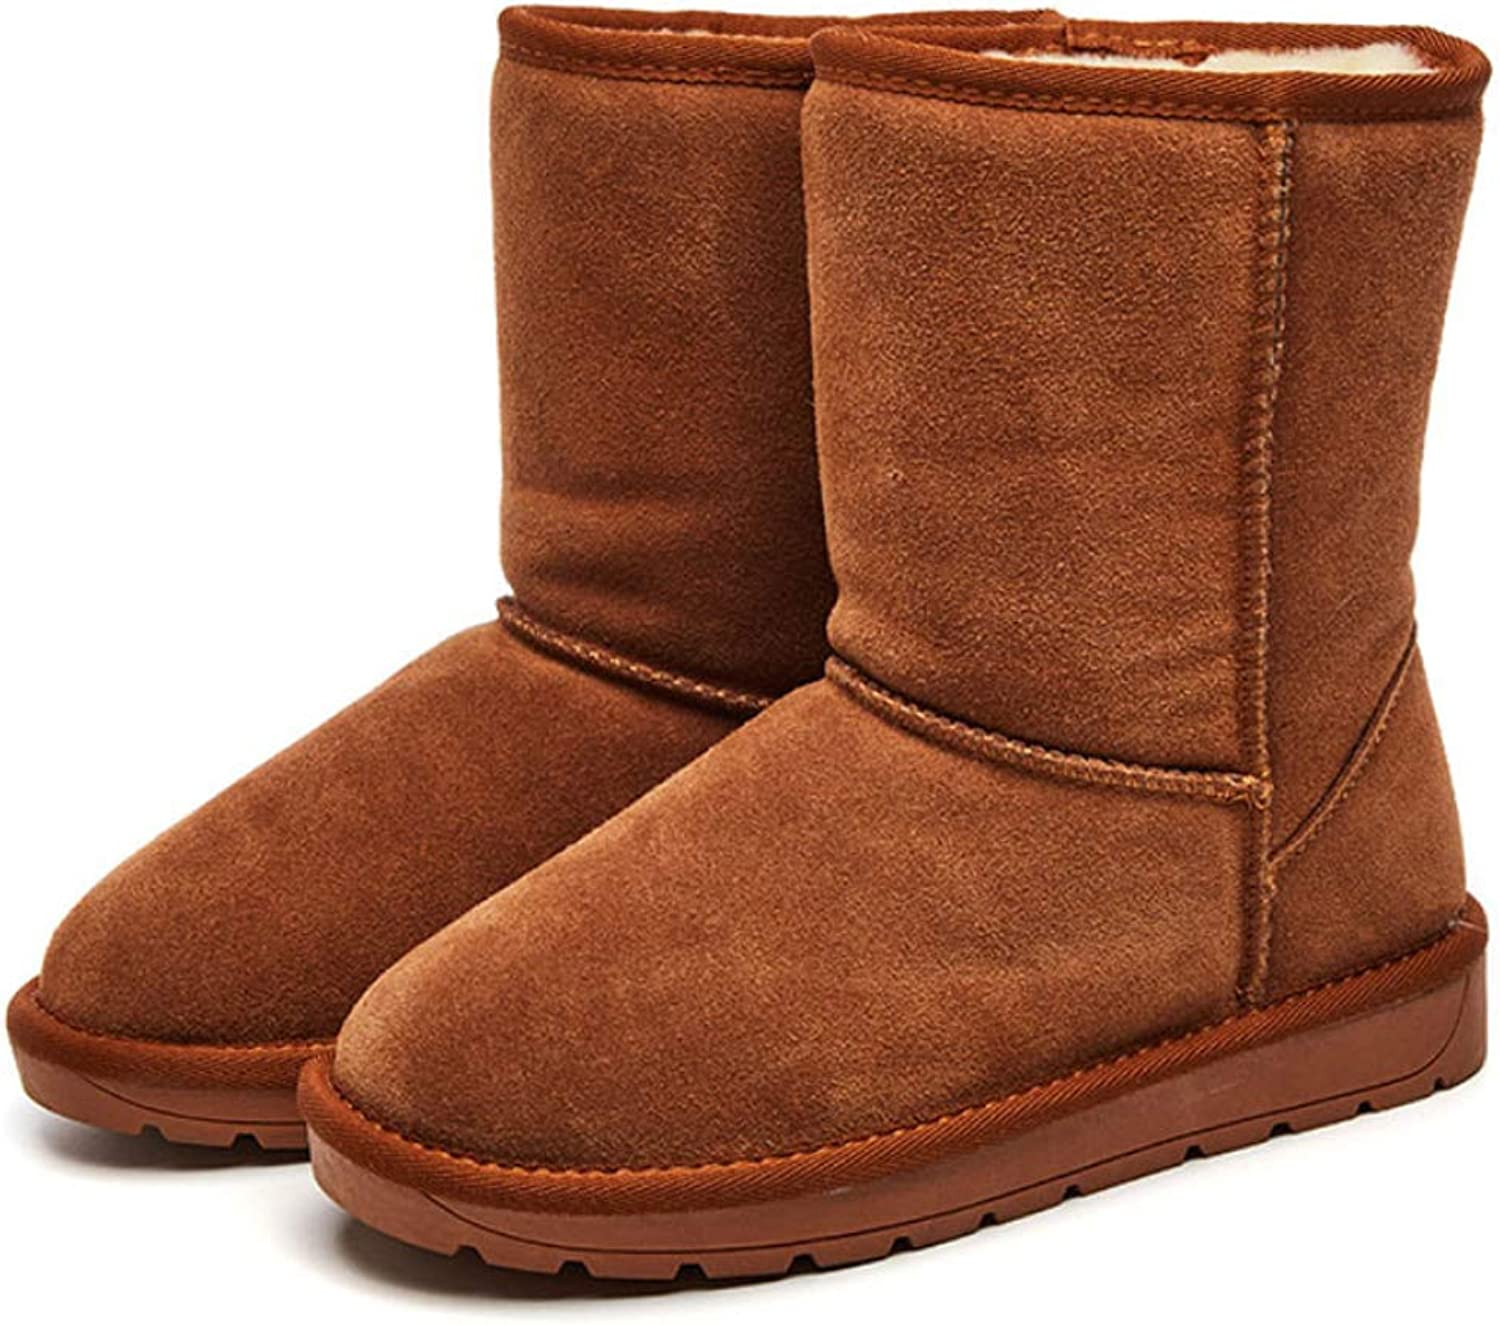 Women's Snow Boots Winter Warm Boots Flat Heel Round Toe Ankle Boots No-Slip shoes